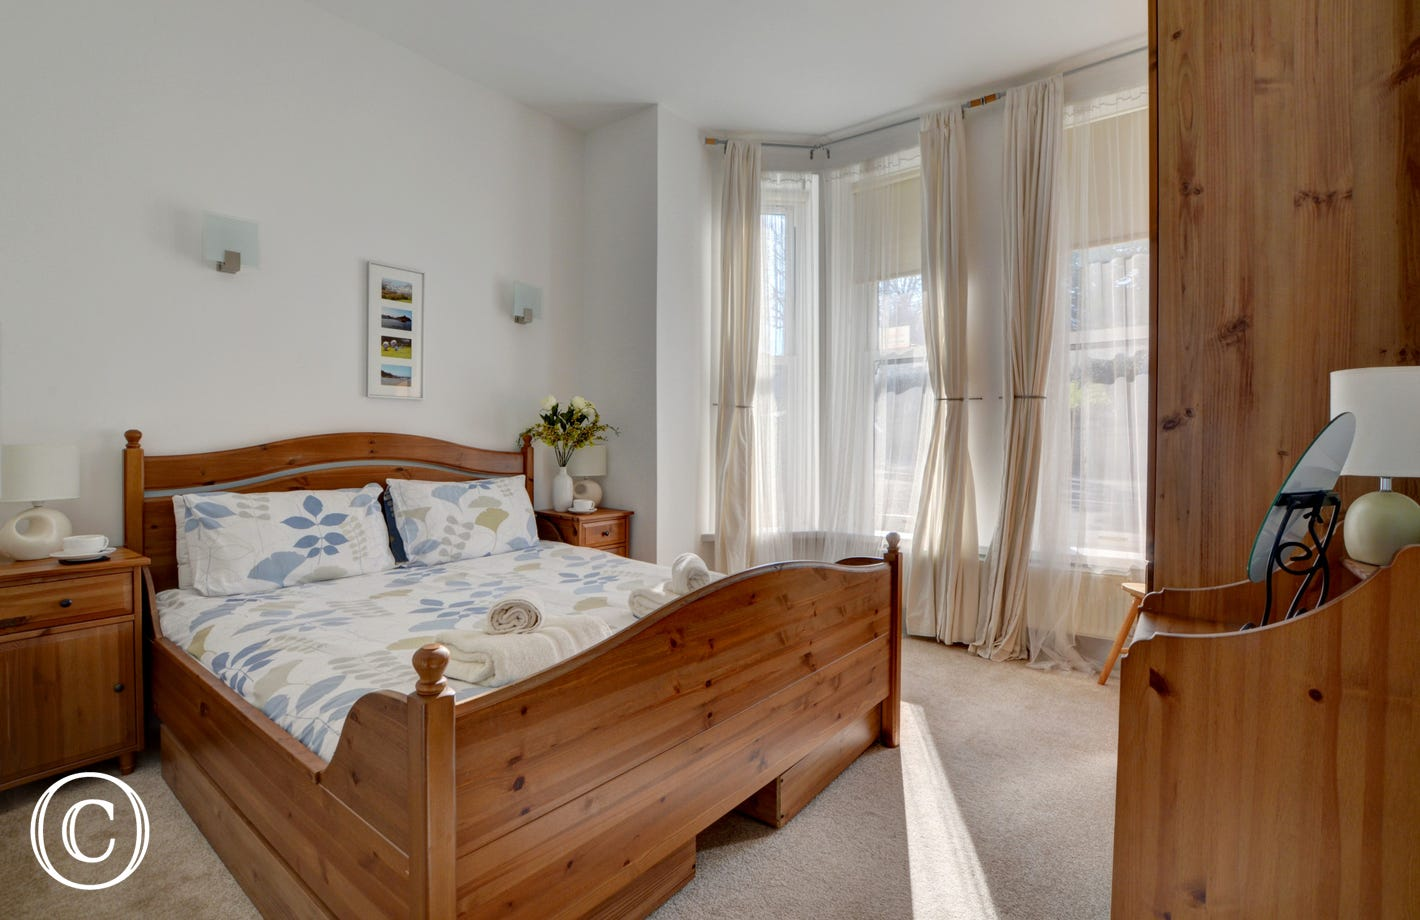 Light and bright double bedroom attractively furnished with large bay windows